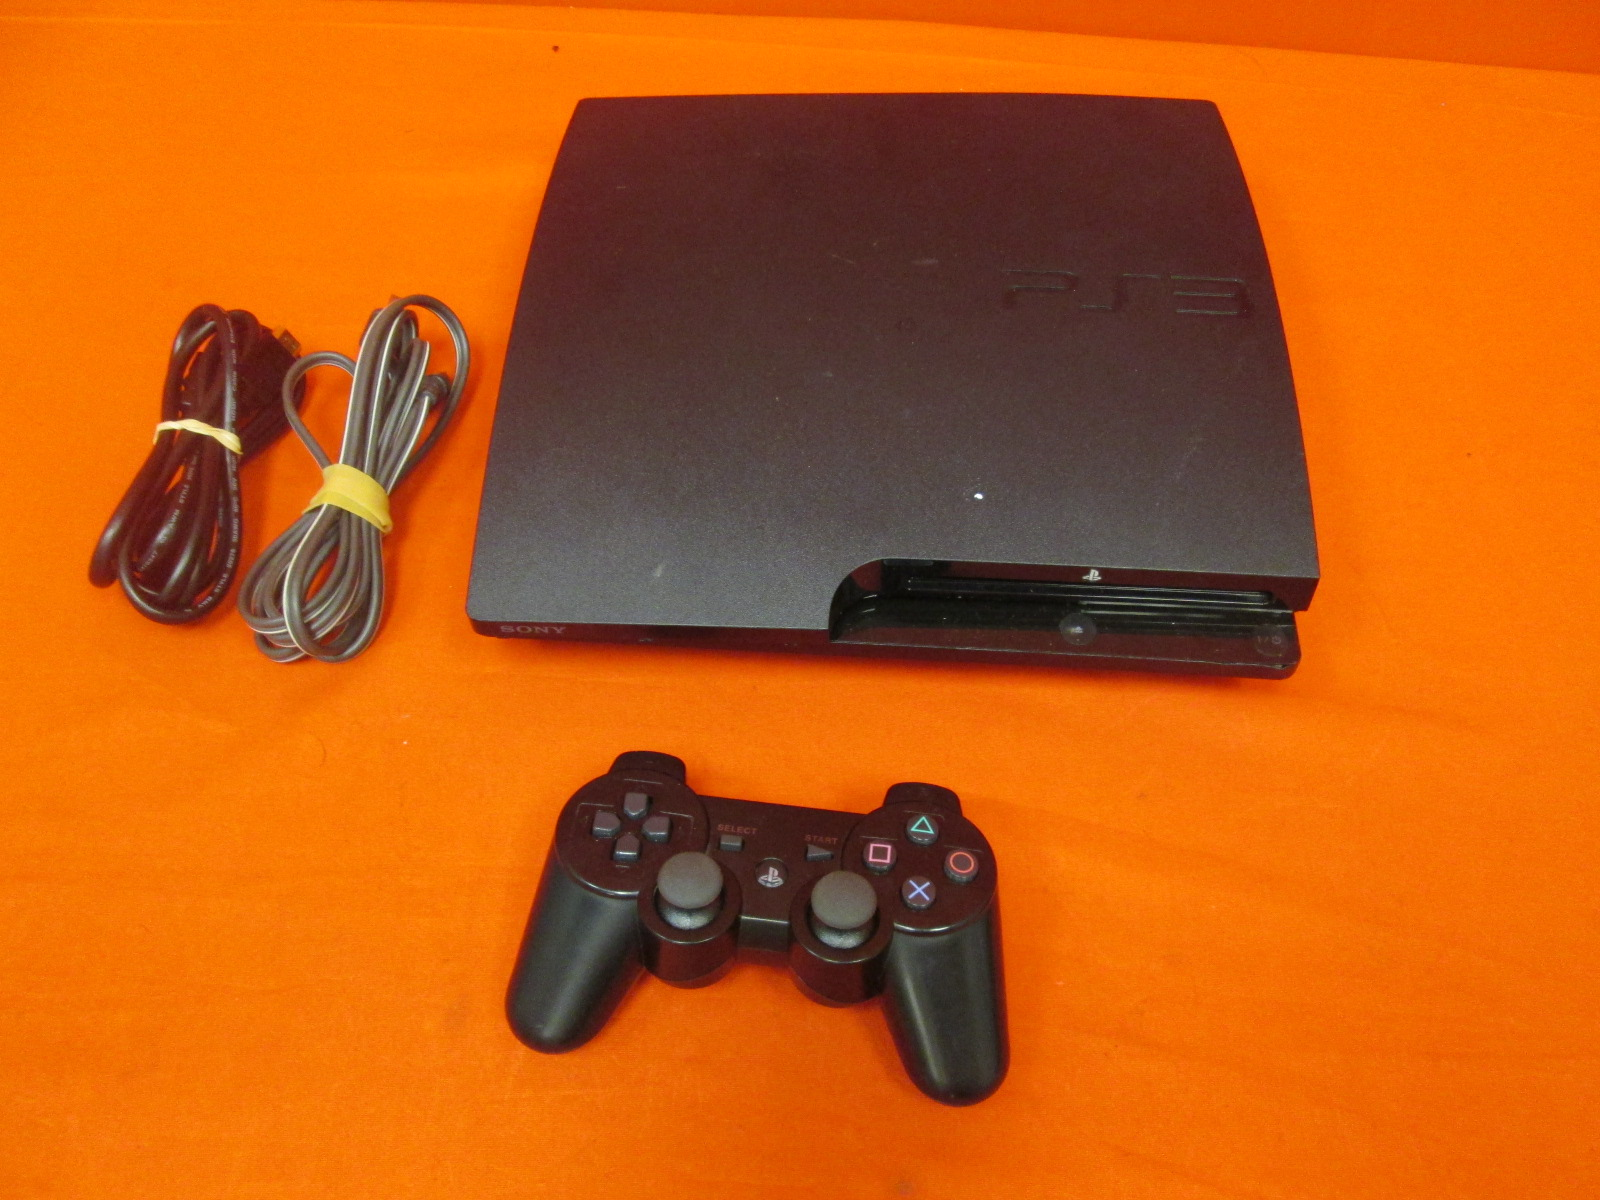 Broken Sony PlayStation 3 160GB System With Controller